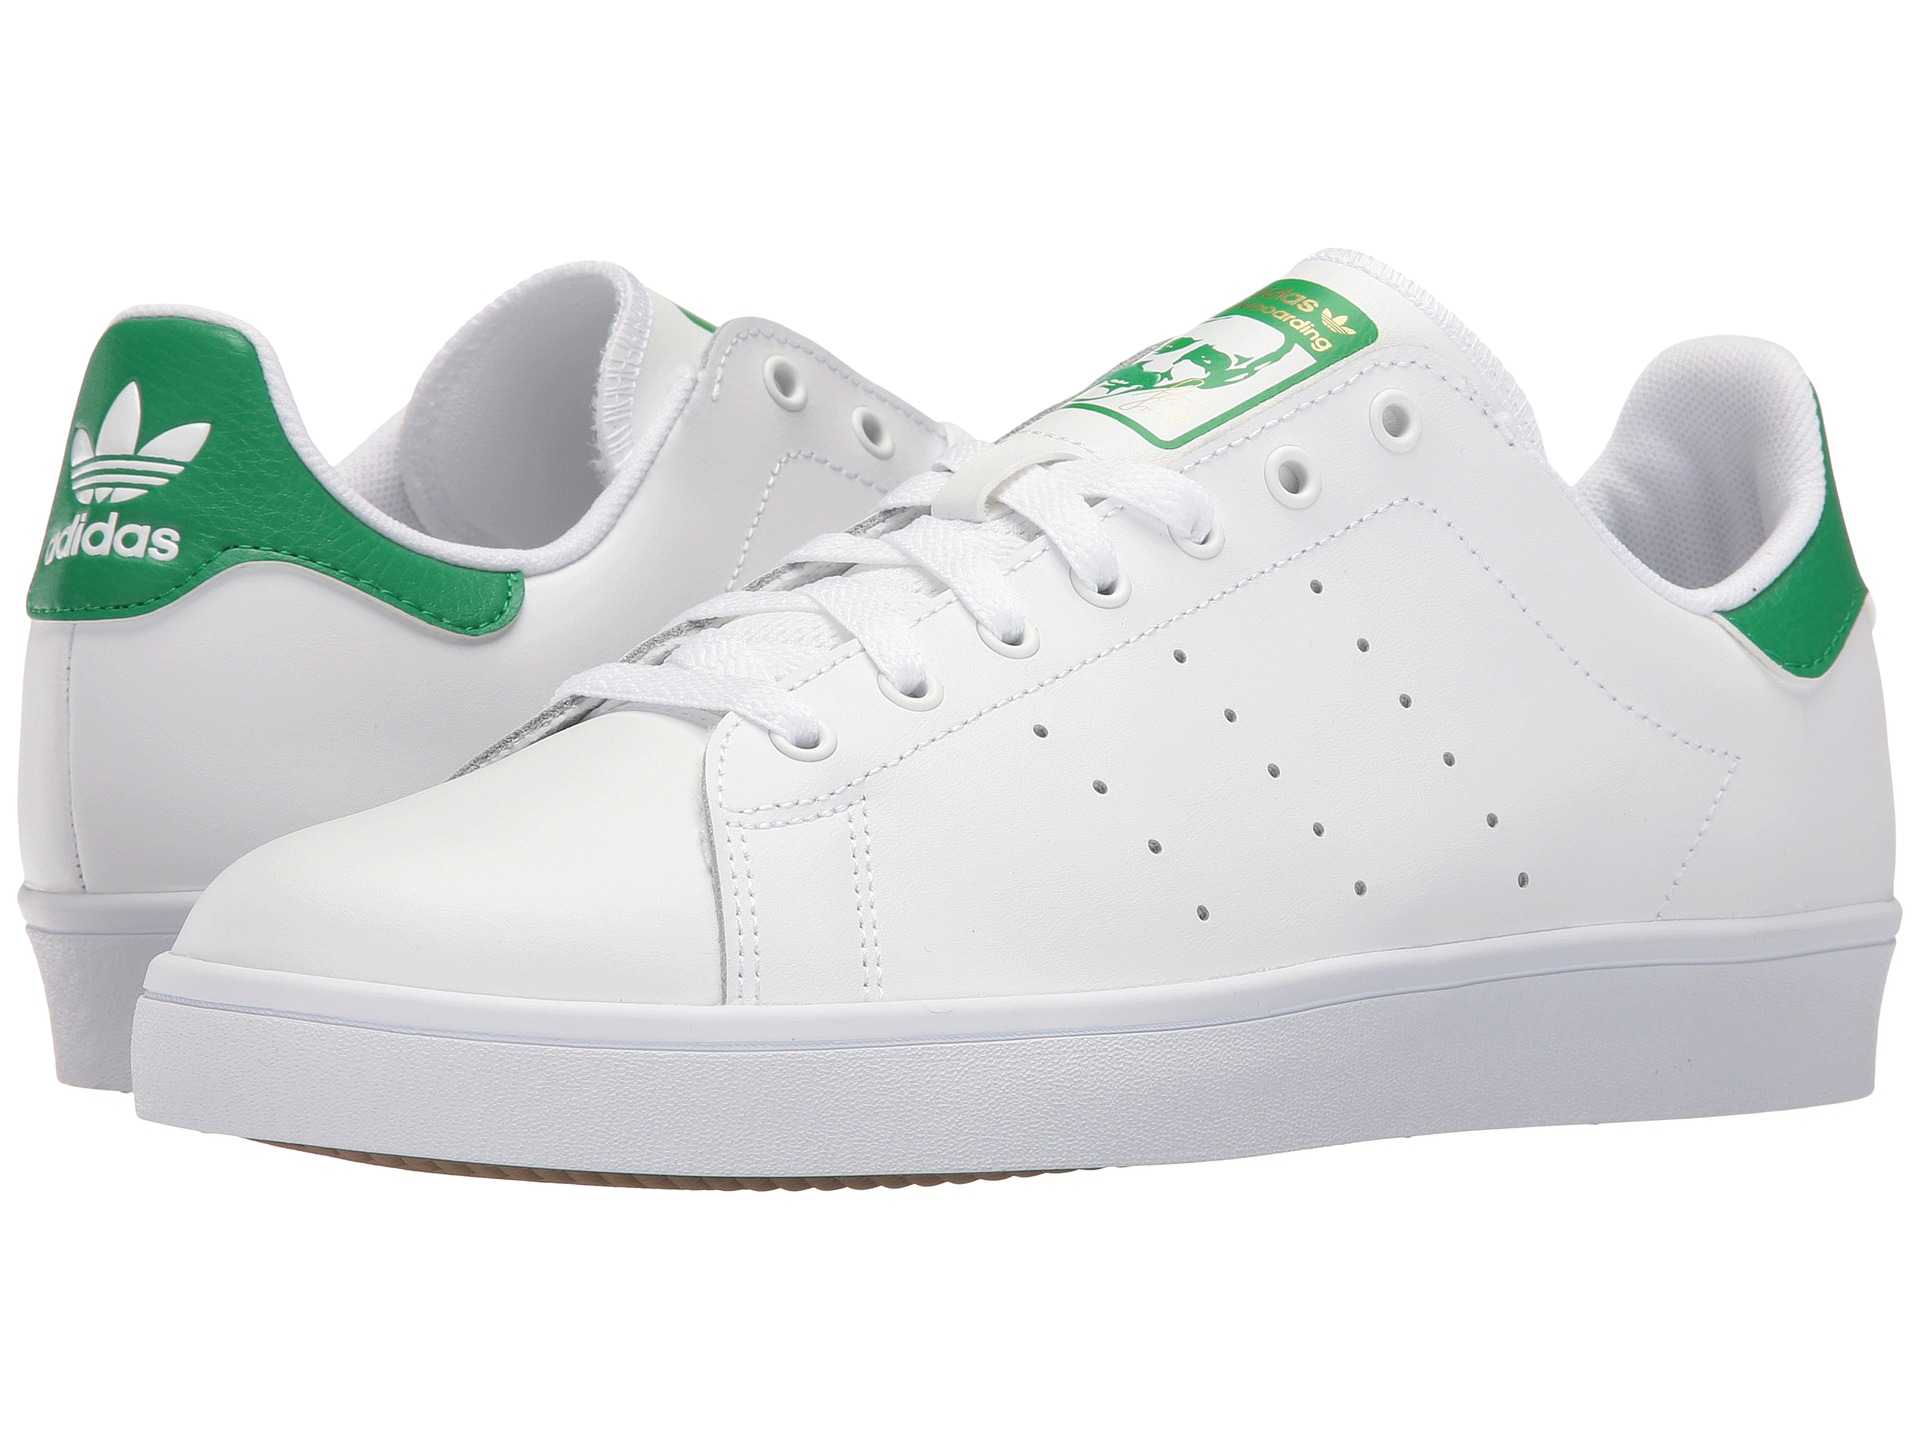 adidas skateboarding stan smith at. Black Bedroom Furniture Sets. Home Design Ideas